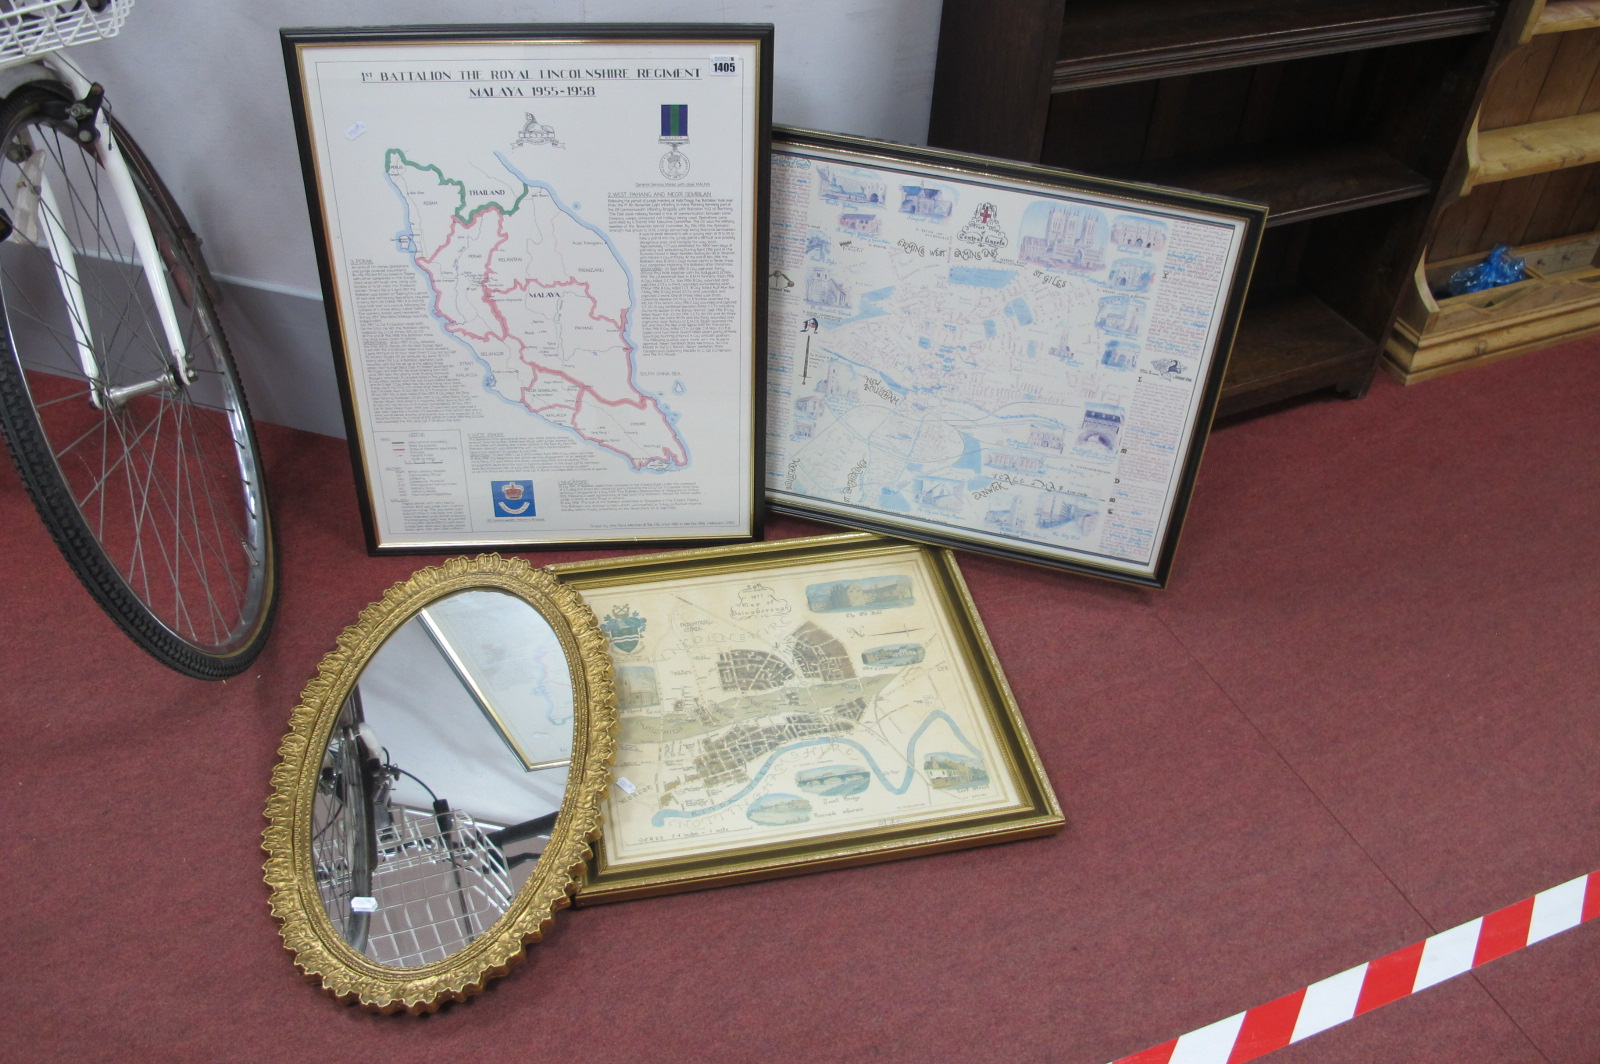 1st Batallion Royal Lincolnshire Regiment Malaya Print, Lincoln maps, oval wall mirror. (4).